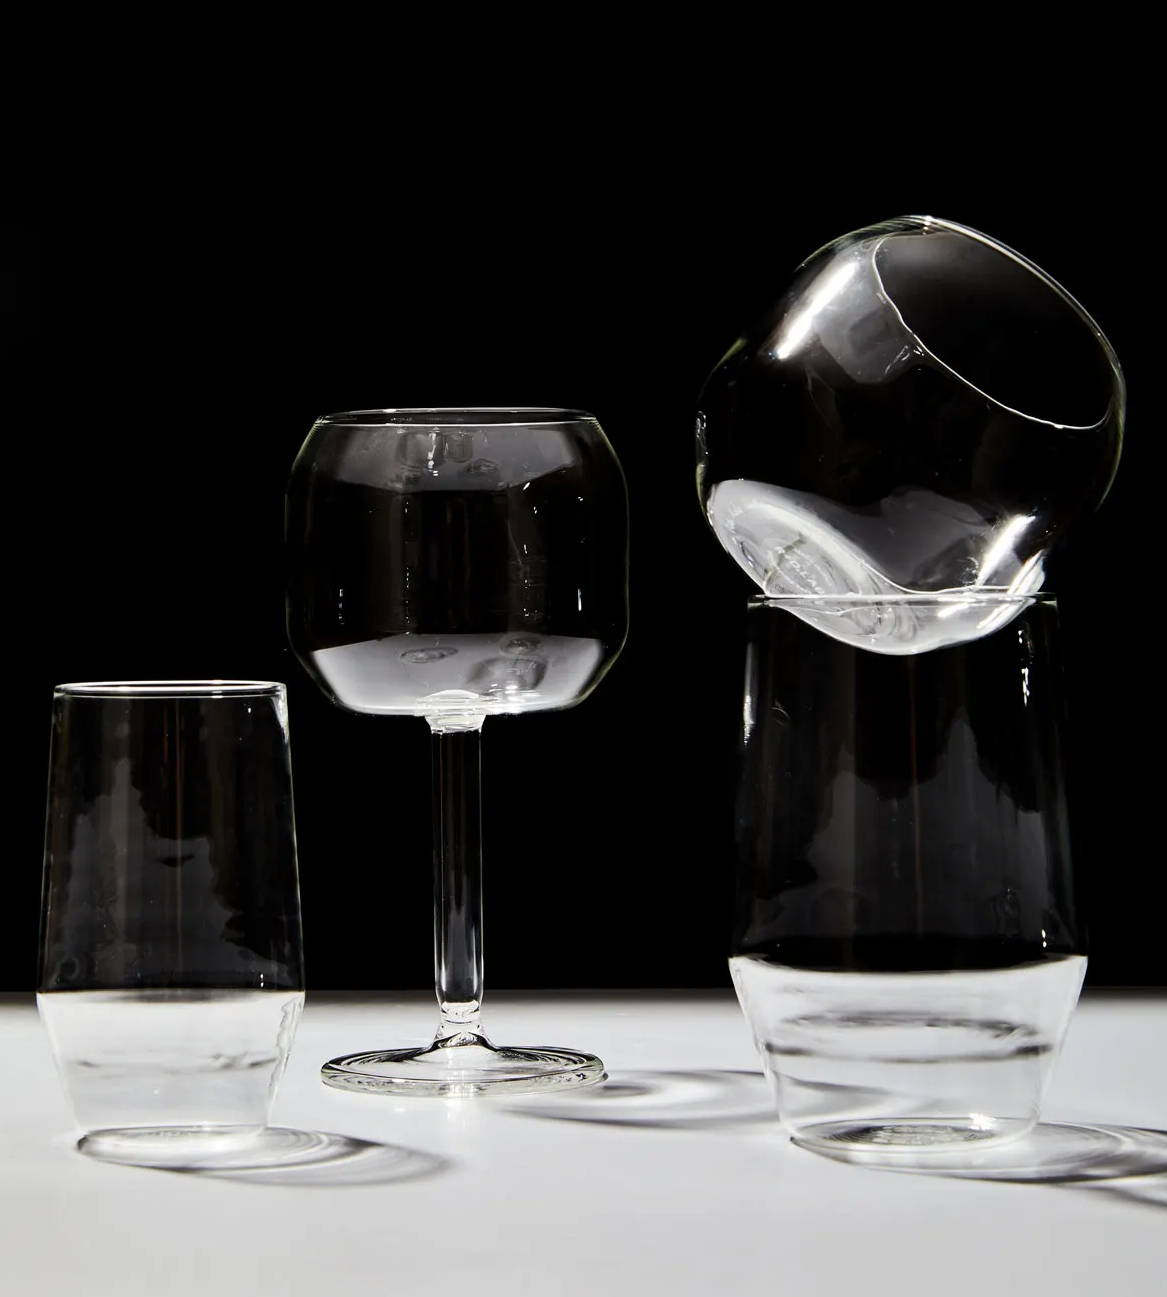 Velasca Glasses by R+D Lab, sold by East Fork pottery